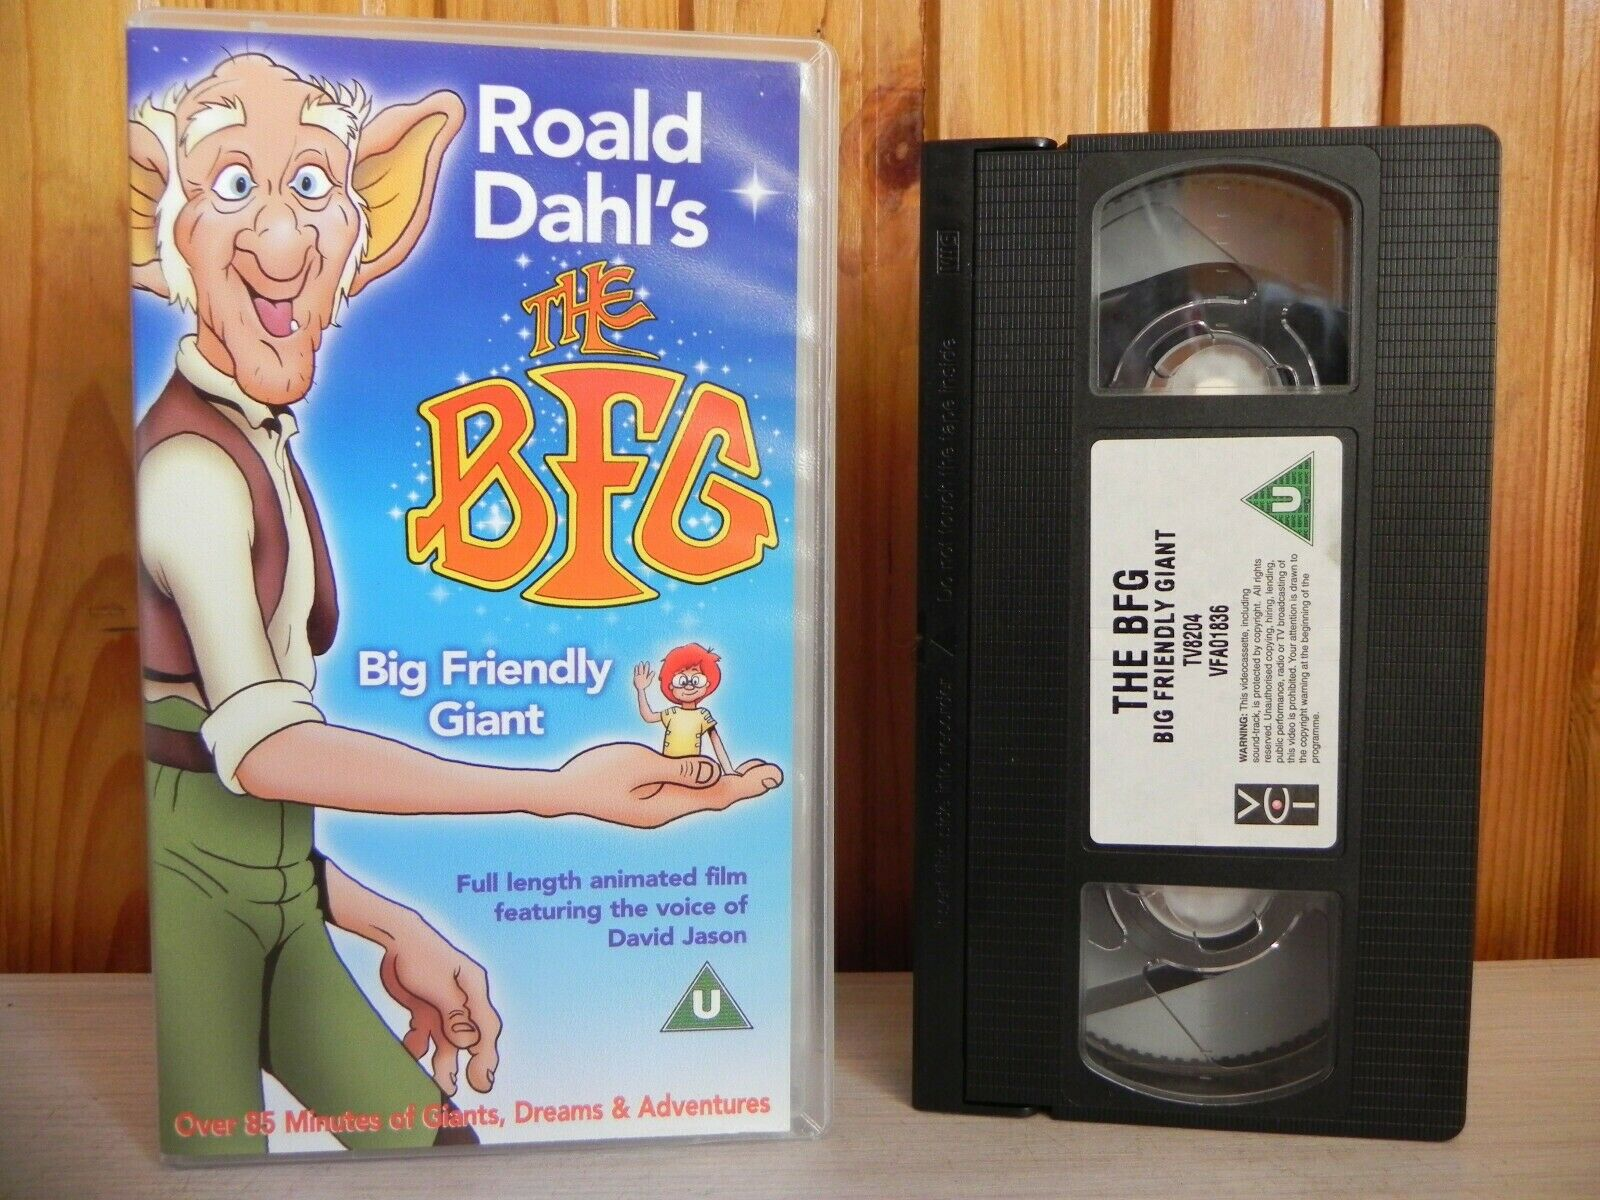 Roald Dahl's - The BFG - Big Friendly Giant - Full Length Animated Film - VHS